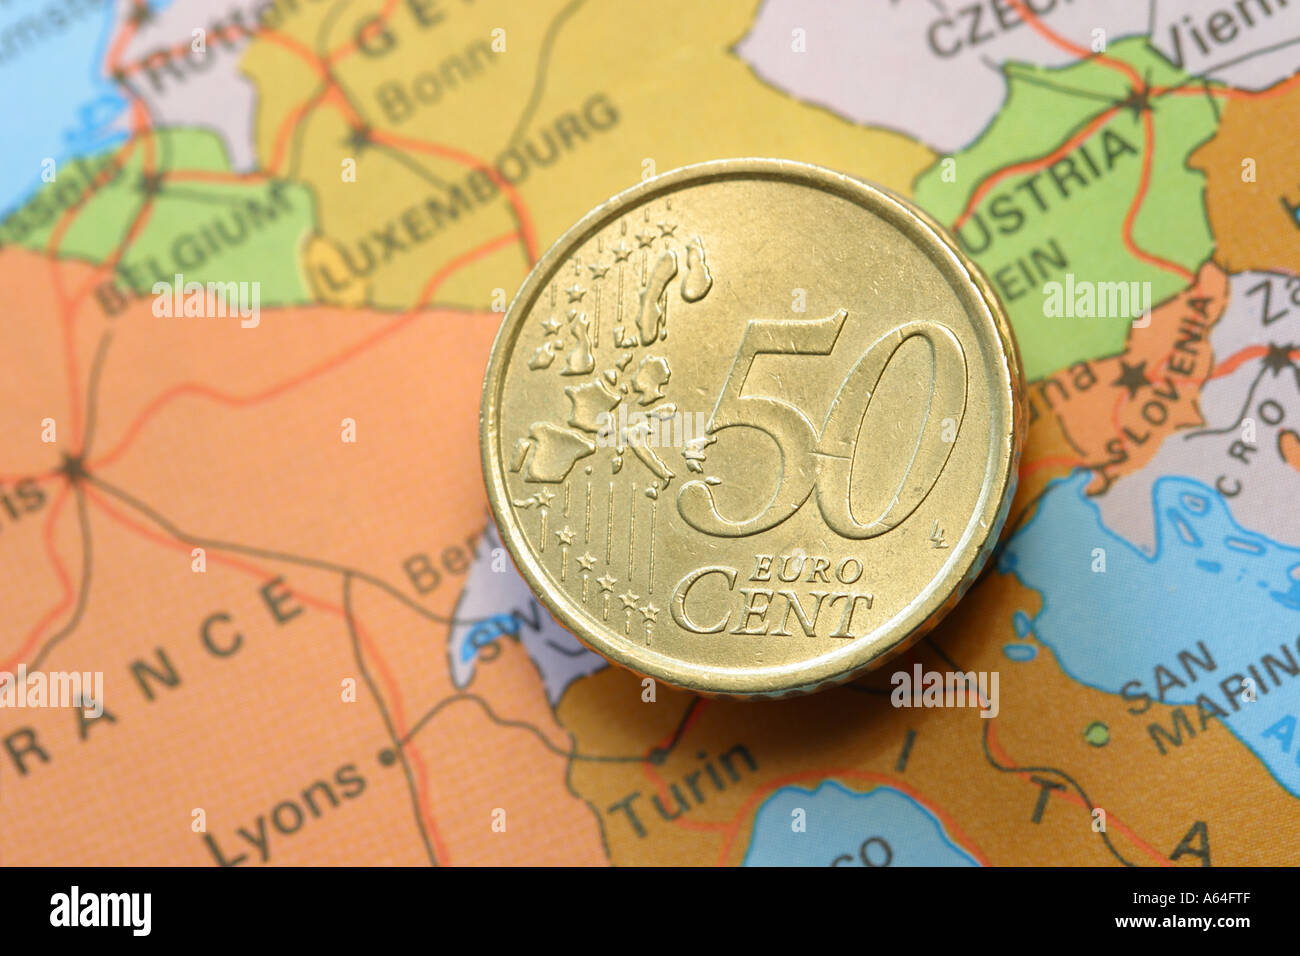 Euro 50 cent coin on map of